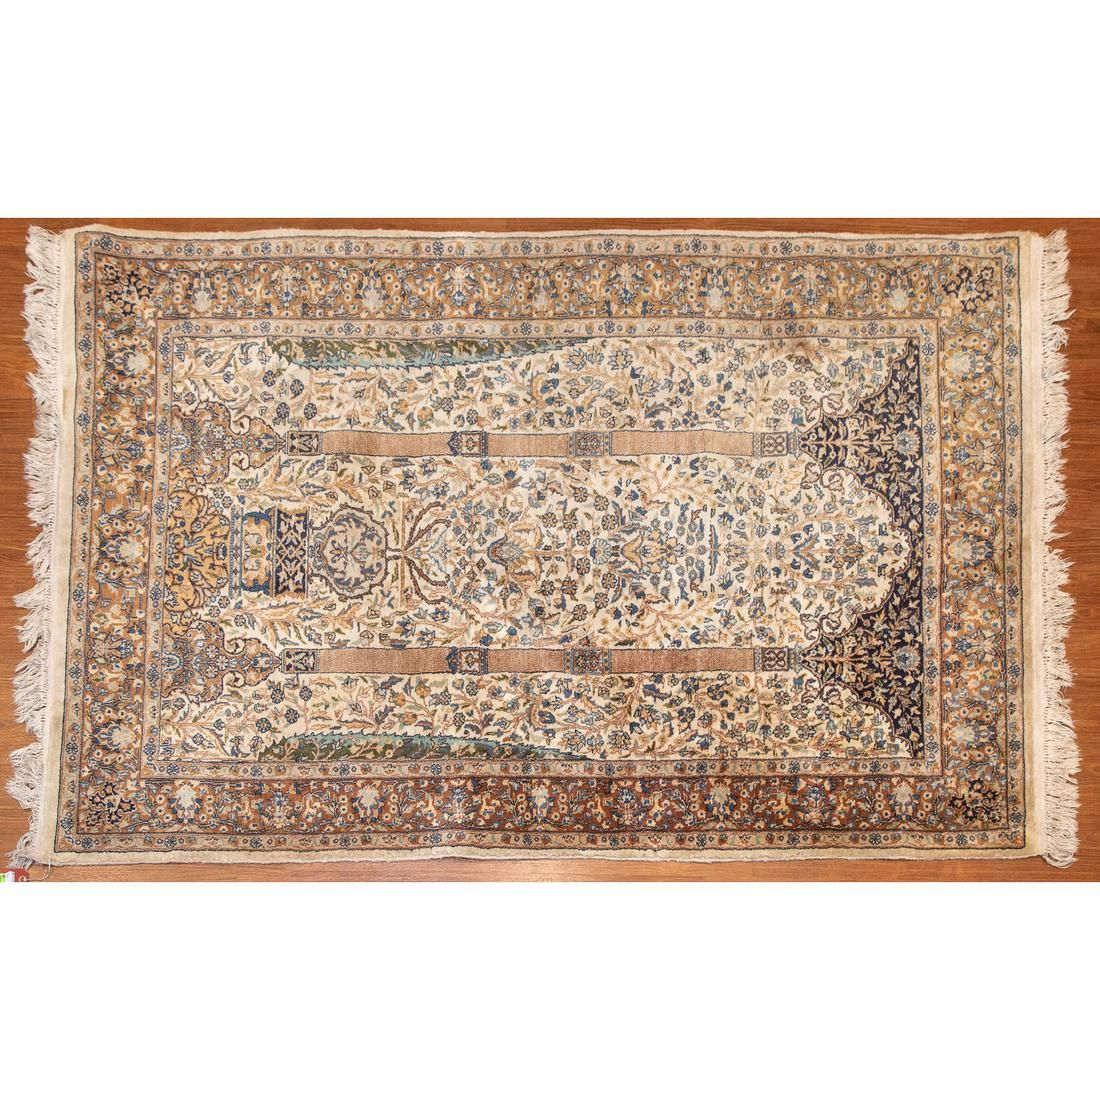 Tabriz Prayer Rug, Persia, 4.1 x 6.4